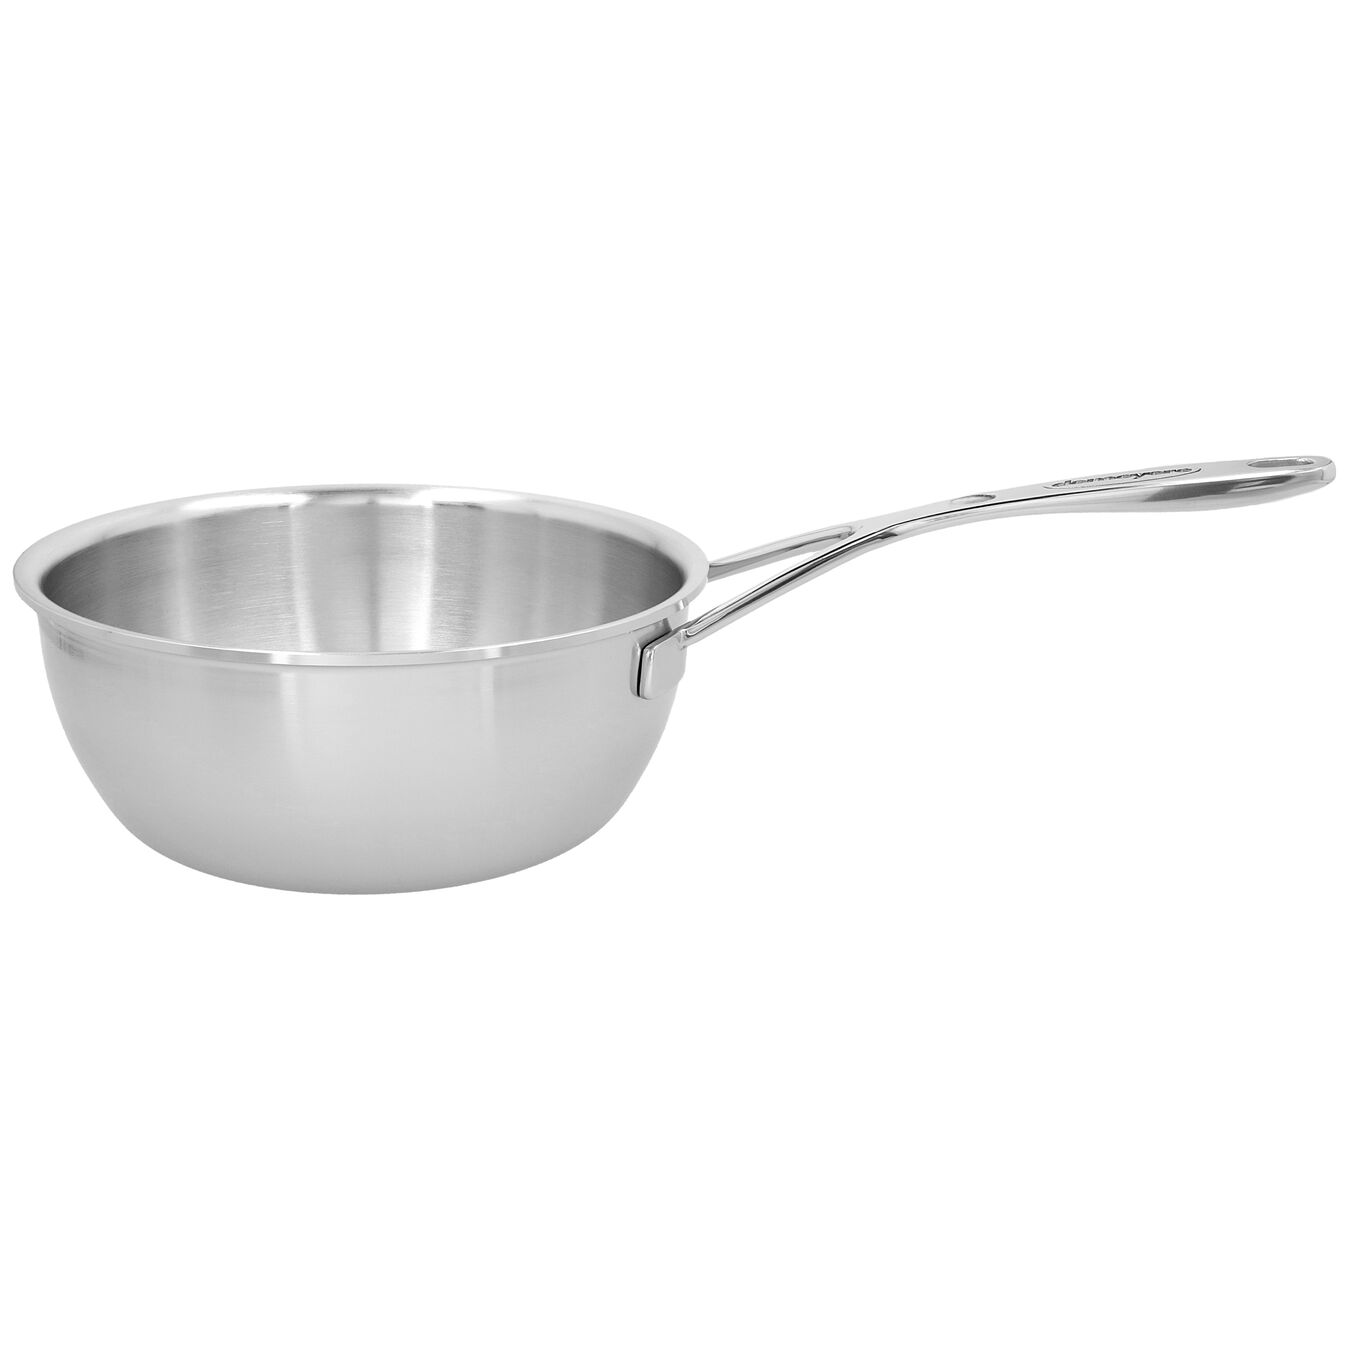 60-oz Sauteuse conical, 18/10 Stainless Steel ,,large 1